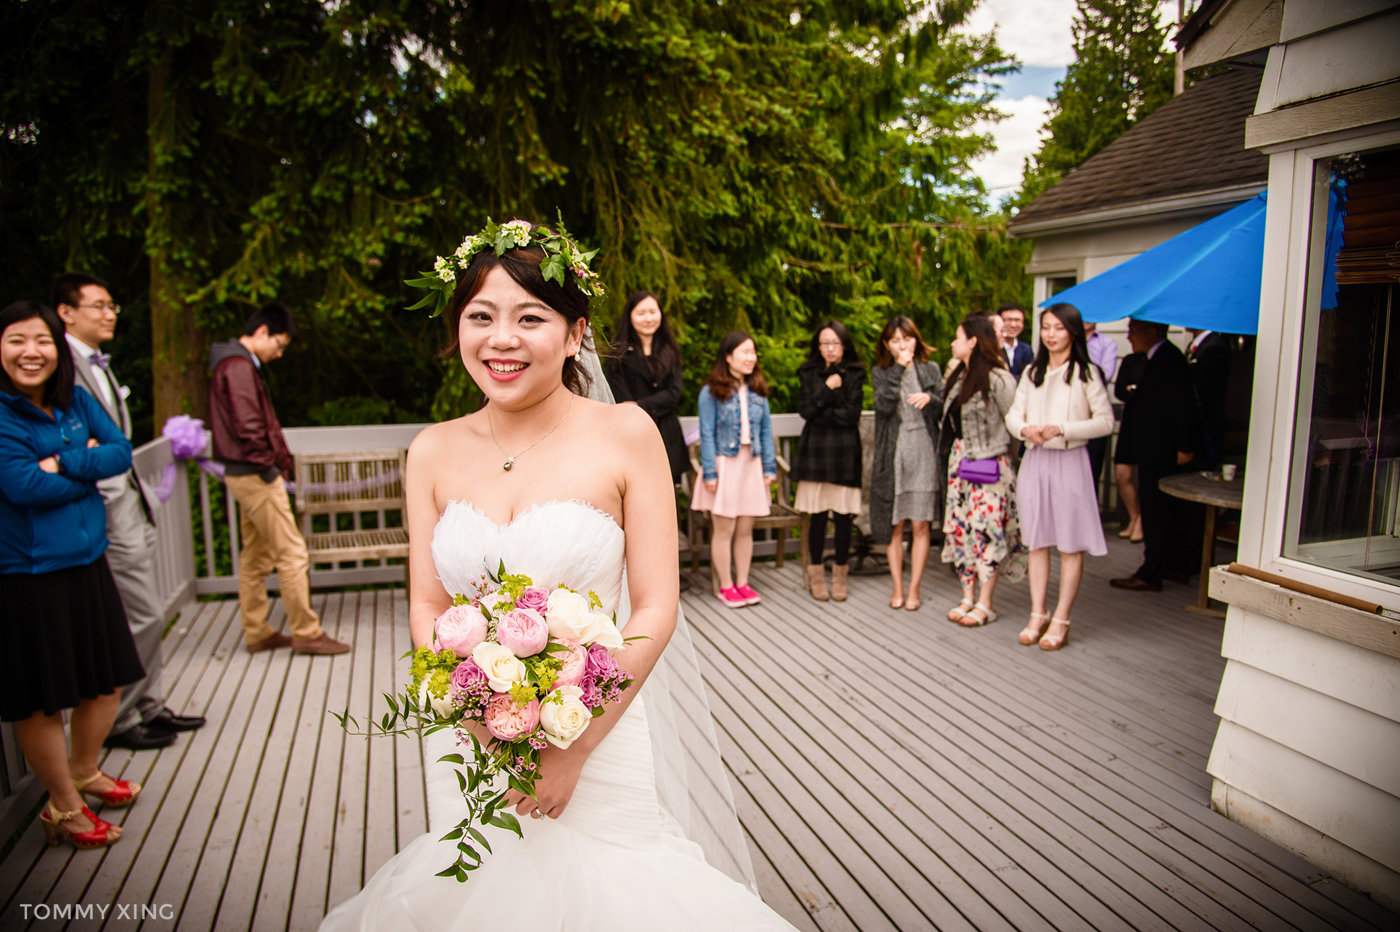 Seattle Wedding and pre wedding Los Angeles Tommy Xing Photography 西雅图洛杉矶旧金山婚礼婚纱照摄影师 132.jpg